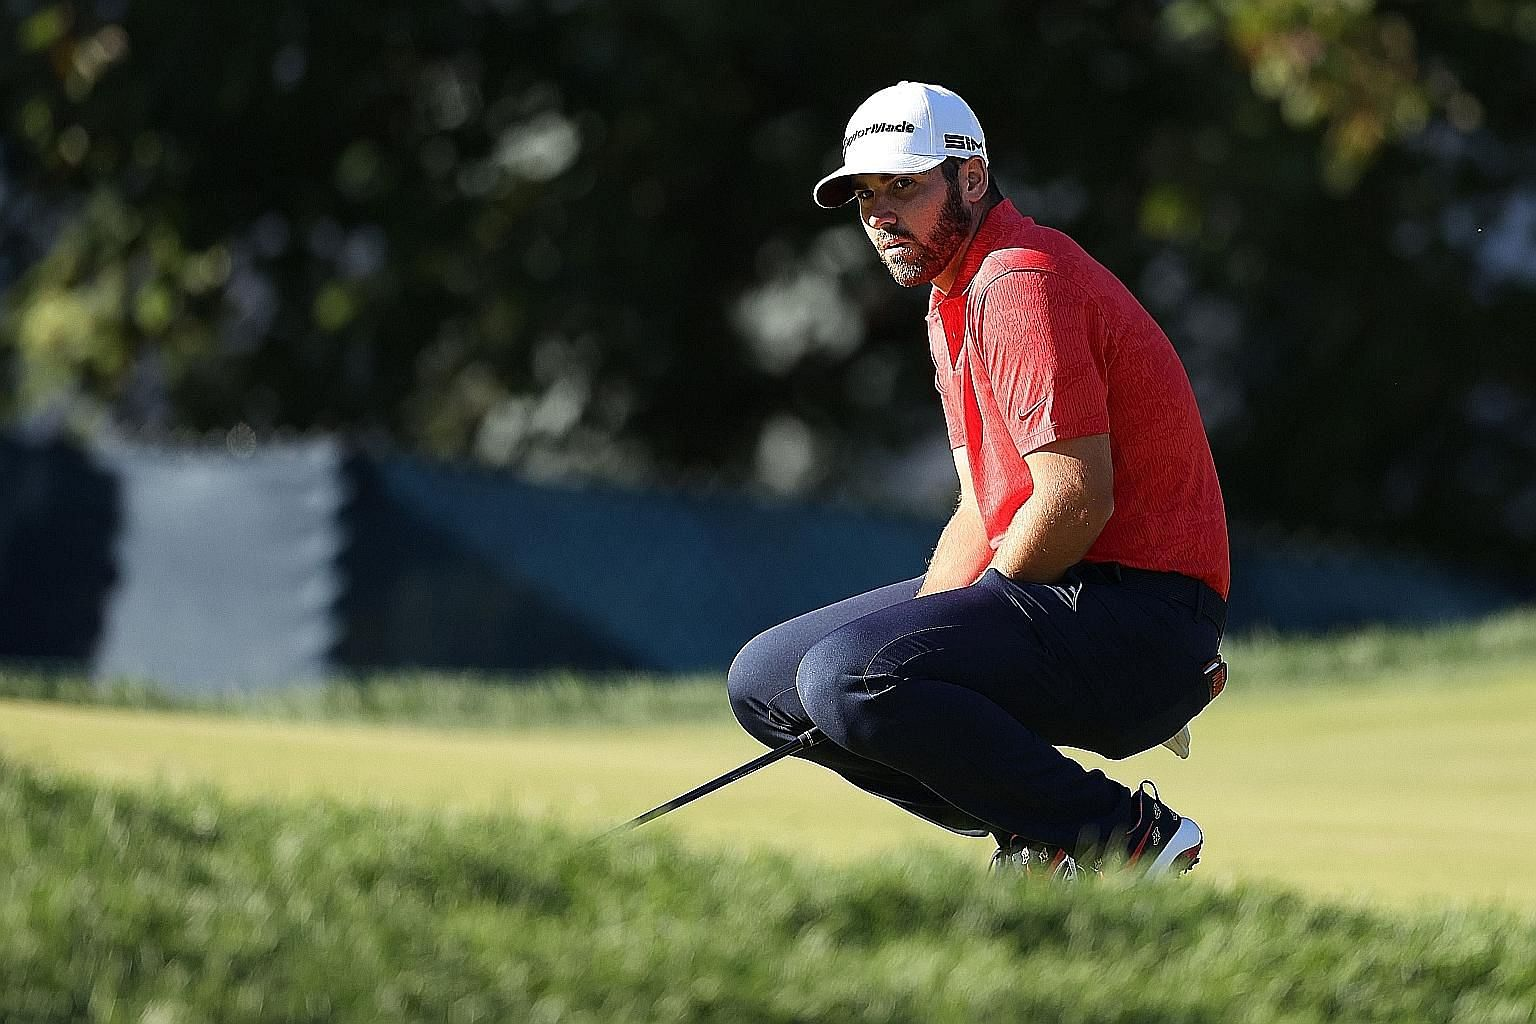 Matthew Wolff reacting to a missed birdie putt on the 15th hole in the third round on Saturday at Winged Foot Golf Club. He was aiming to be the youngest US Open champion in the modern era. PHOTO: AGENCE FRANCE-PRESSE